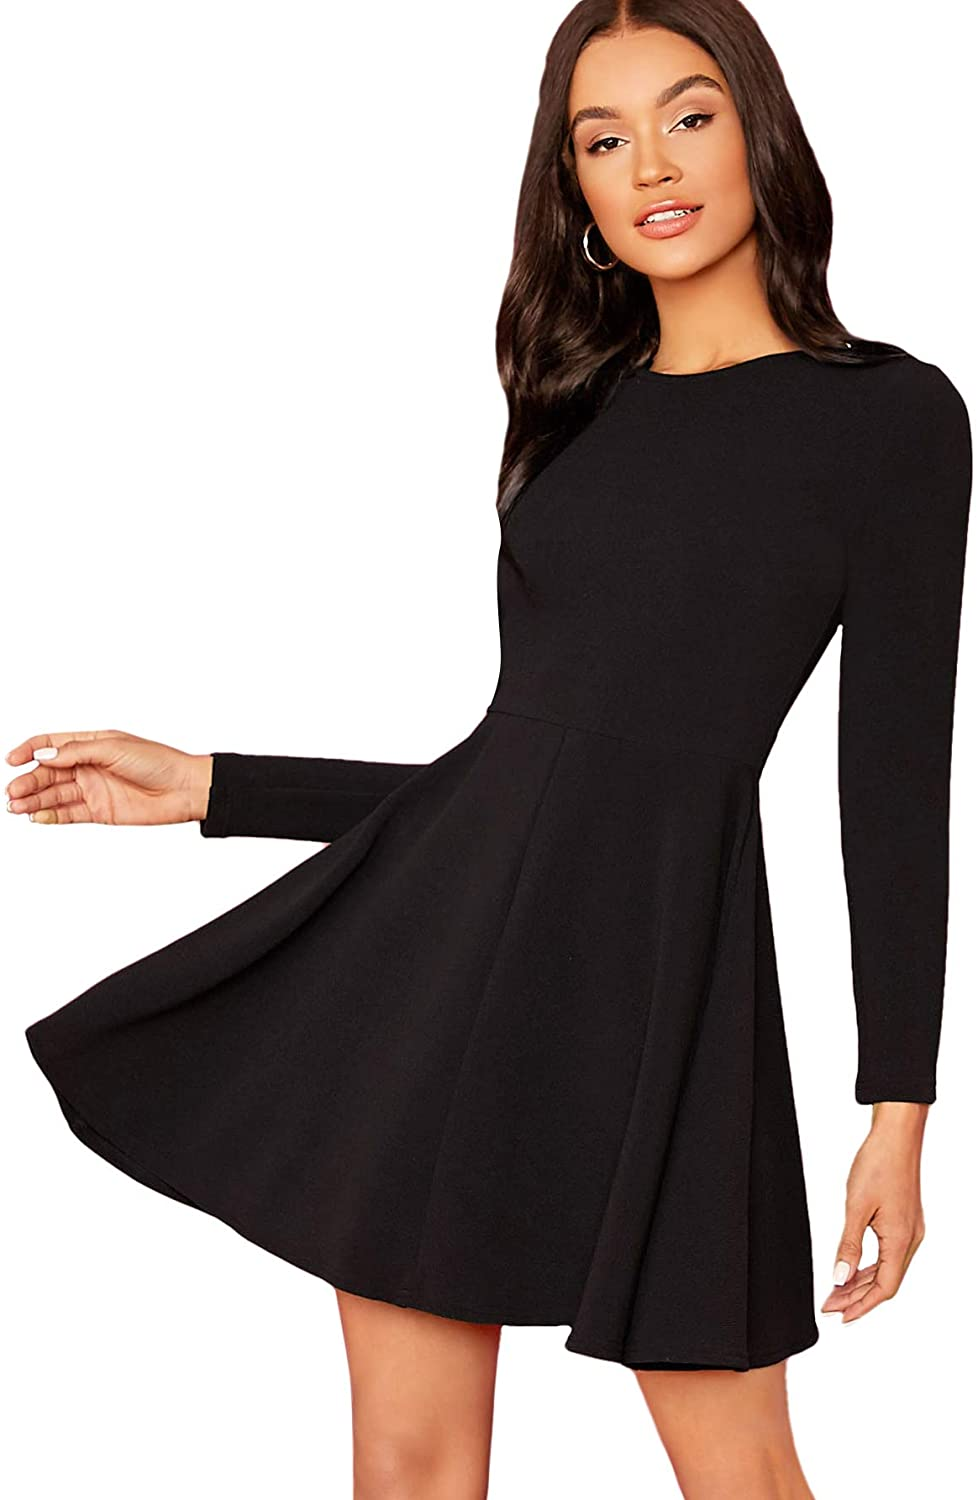 Floerns Women's Solid Casual Long Sleeve Fit and Flare Skater Dress